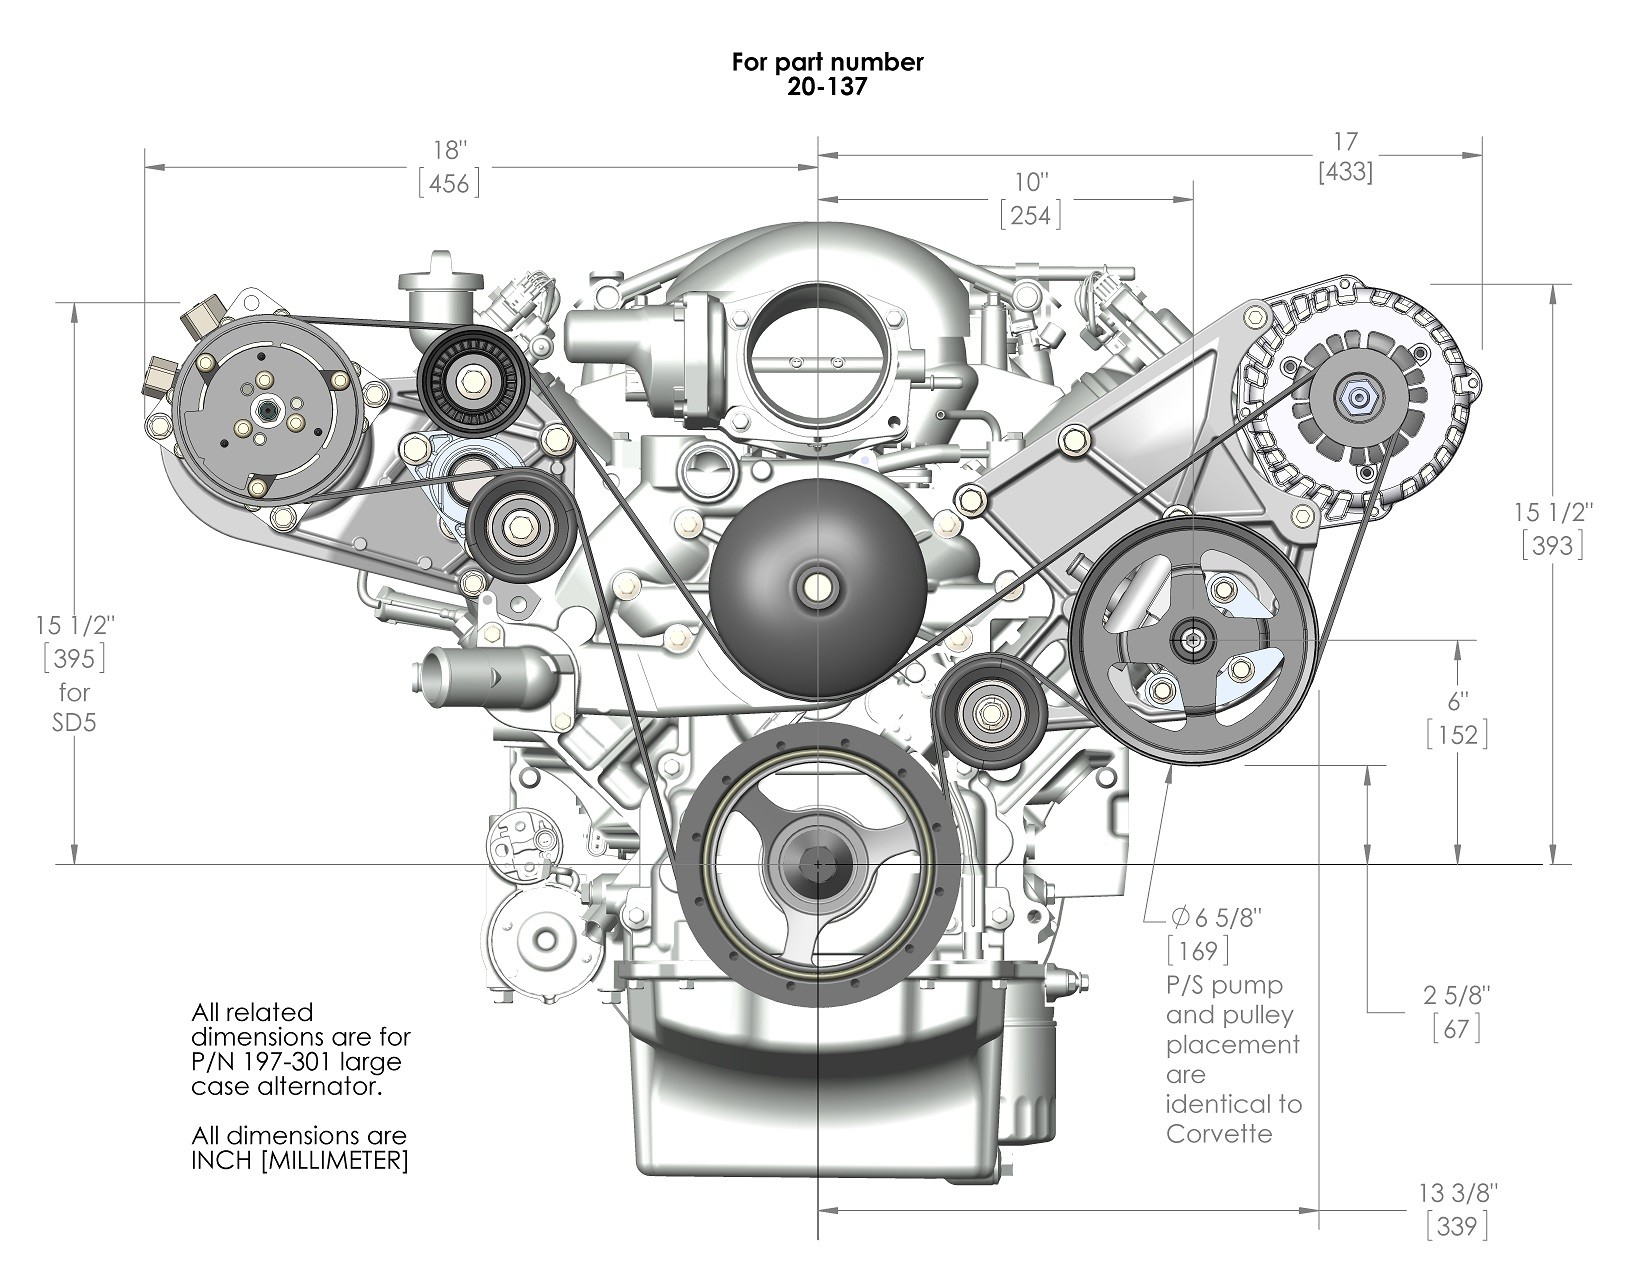 3 1 Liter V6 Engine Diagram 2004 Mazda 6 Wiring Power Window 20 137 Dimensions1 16501275 Ls Engines Pinterest Of